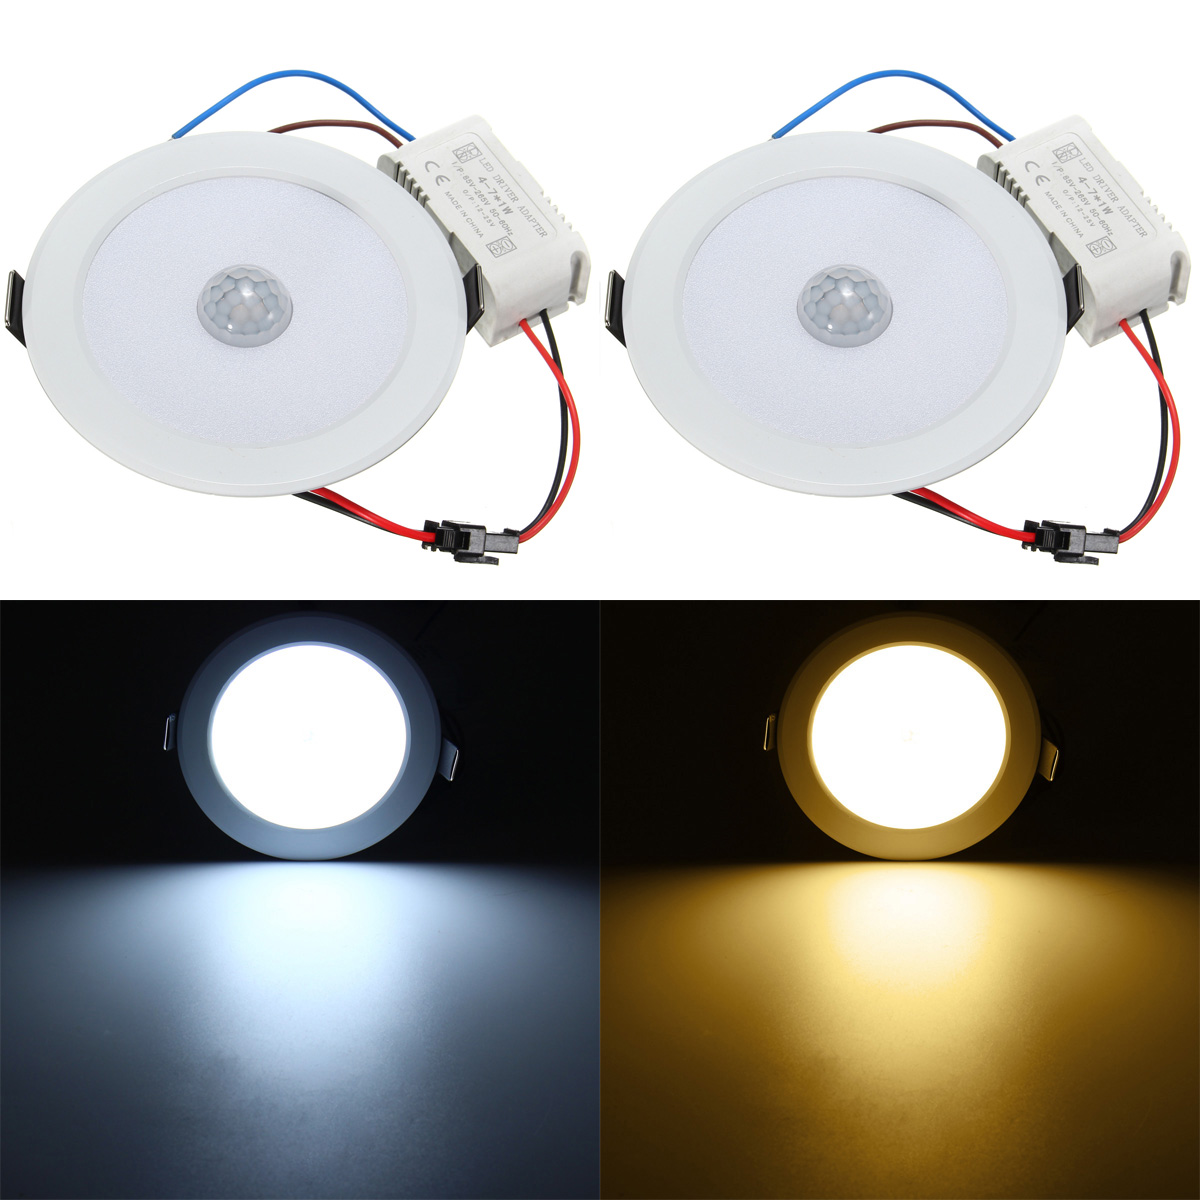 E27 House Motion Sensor Ceiling Light 5730 SMD AC 85-265V LED Night Lamp Warm White Hallway Indoor Lighting 2017 nitecore five colours primary infrared light ci6 hunting kit gear hunting law enforcement militar flashlight lantern boxset